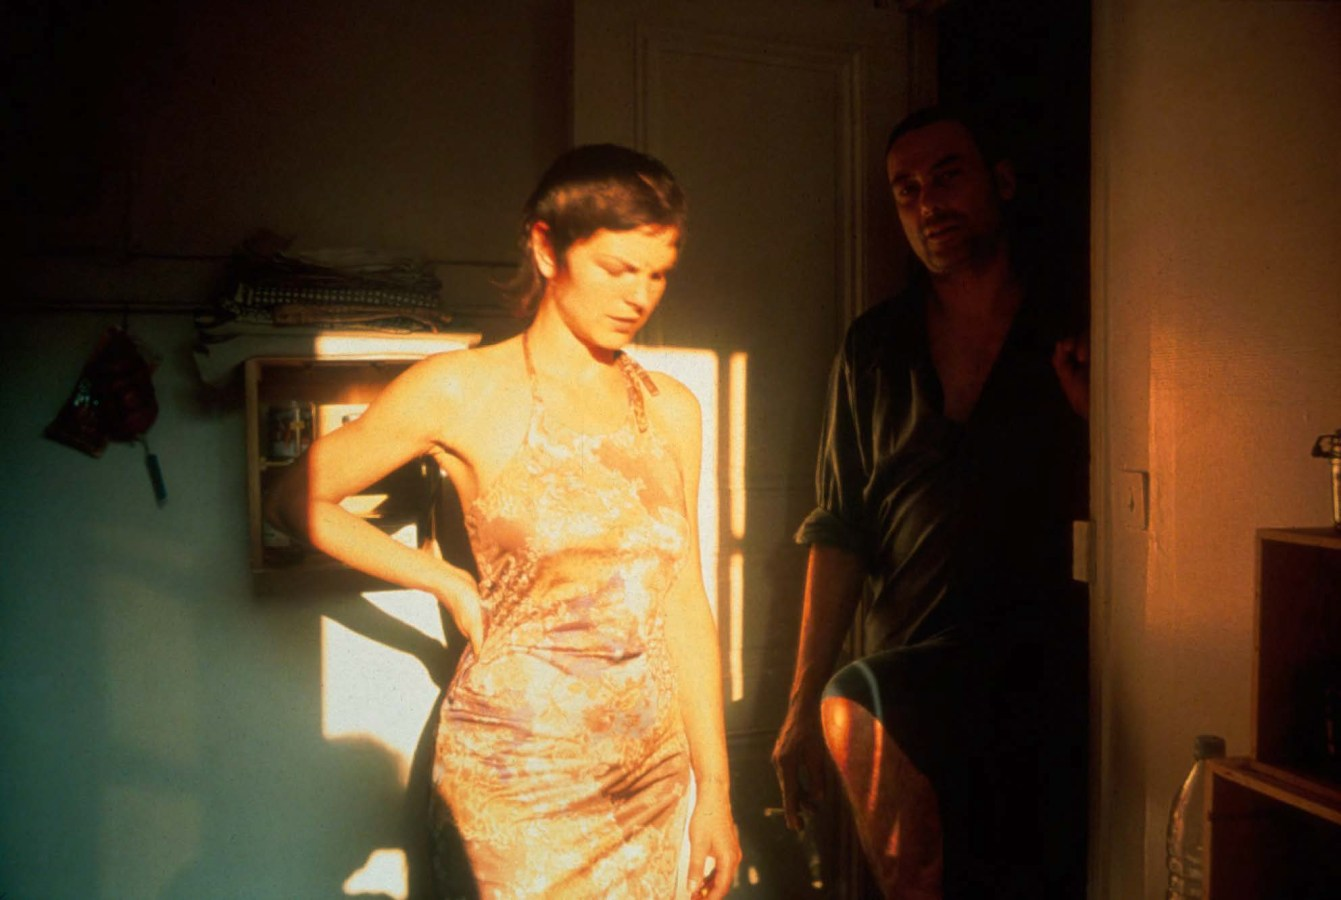 Color photograph inside a rom of a woman with her hand on her hip standing in the sunlight cast from a window and a man smoking a cigarette in a doorway behind her.